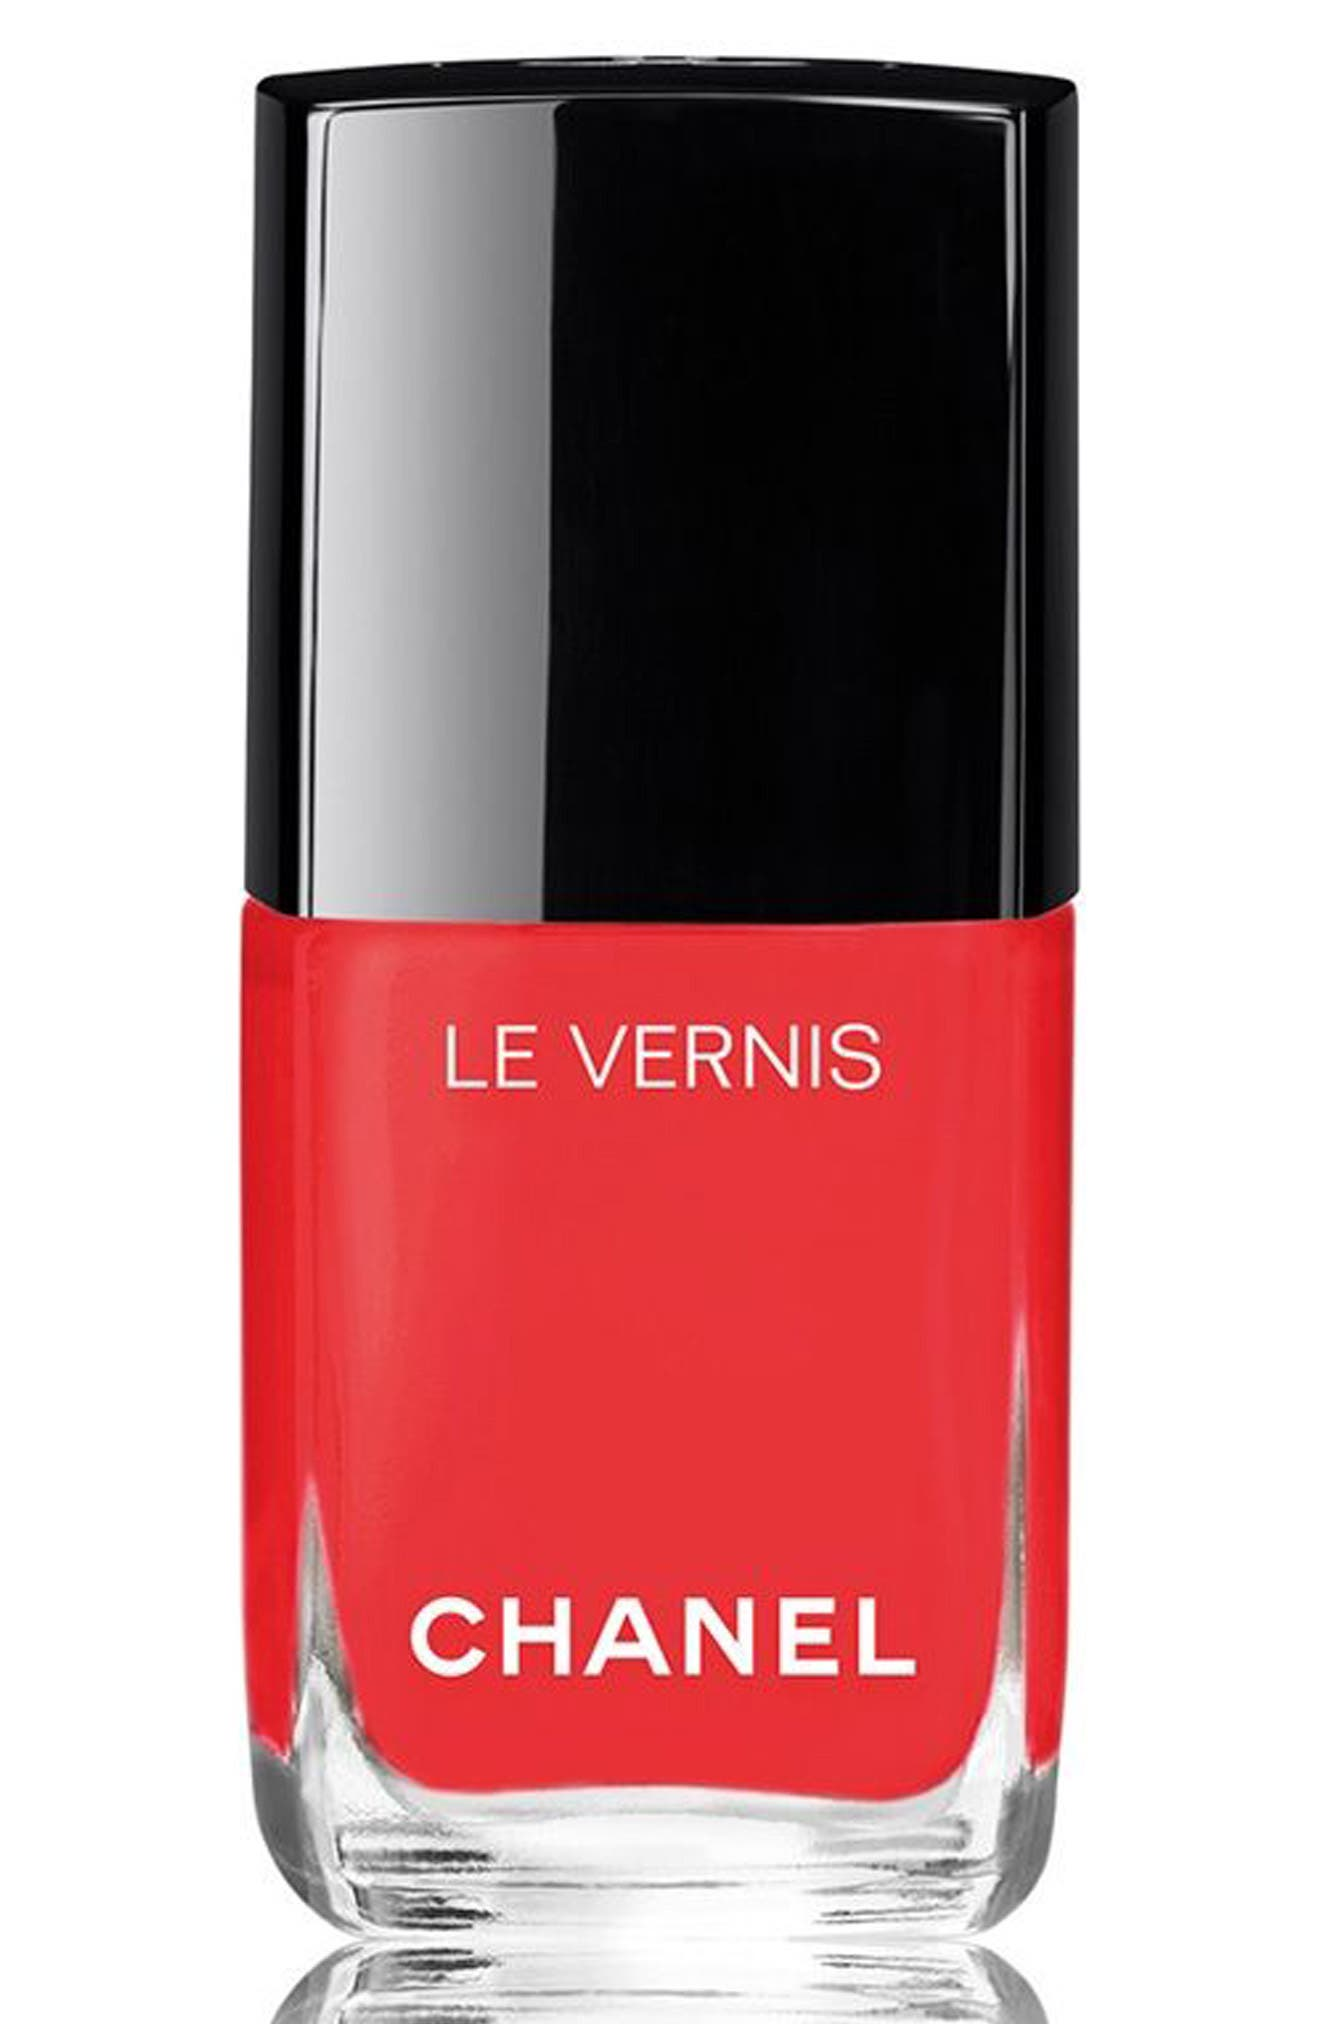 CHANEL LE VERNIS Neon Nail Colour (Limited Edition)